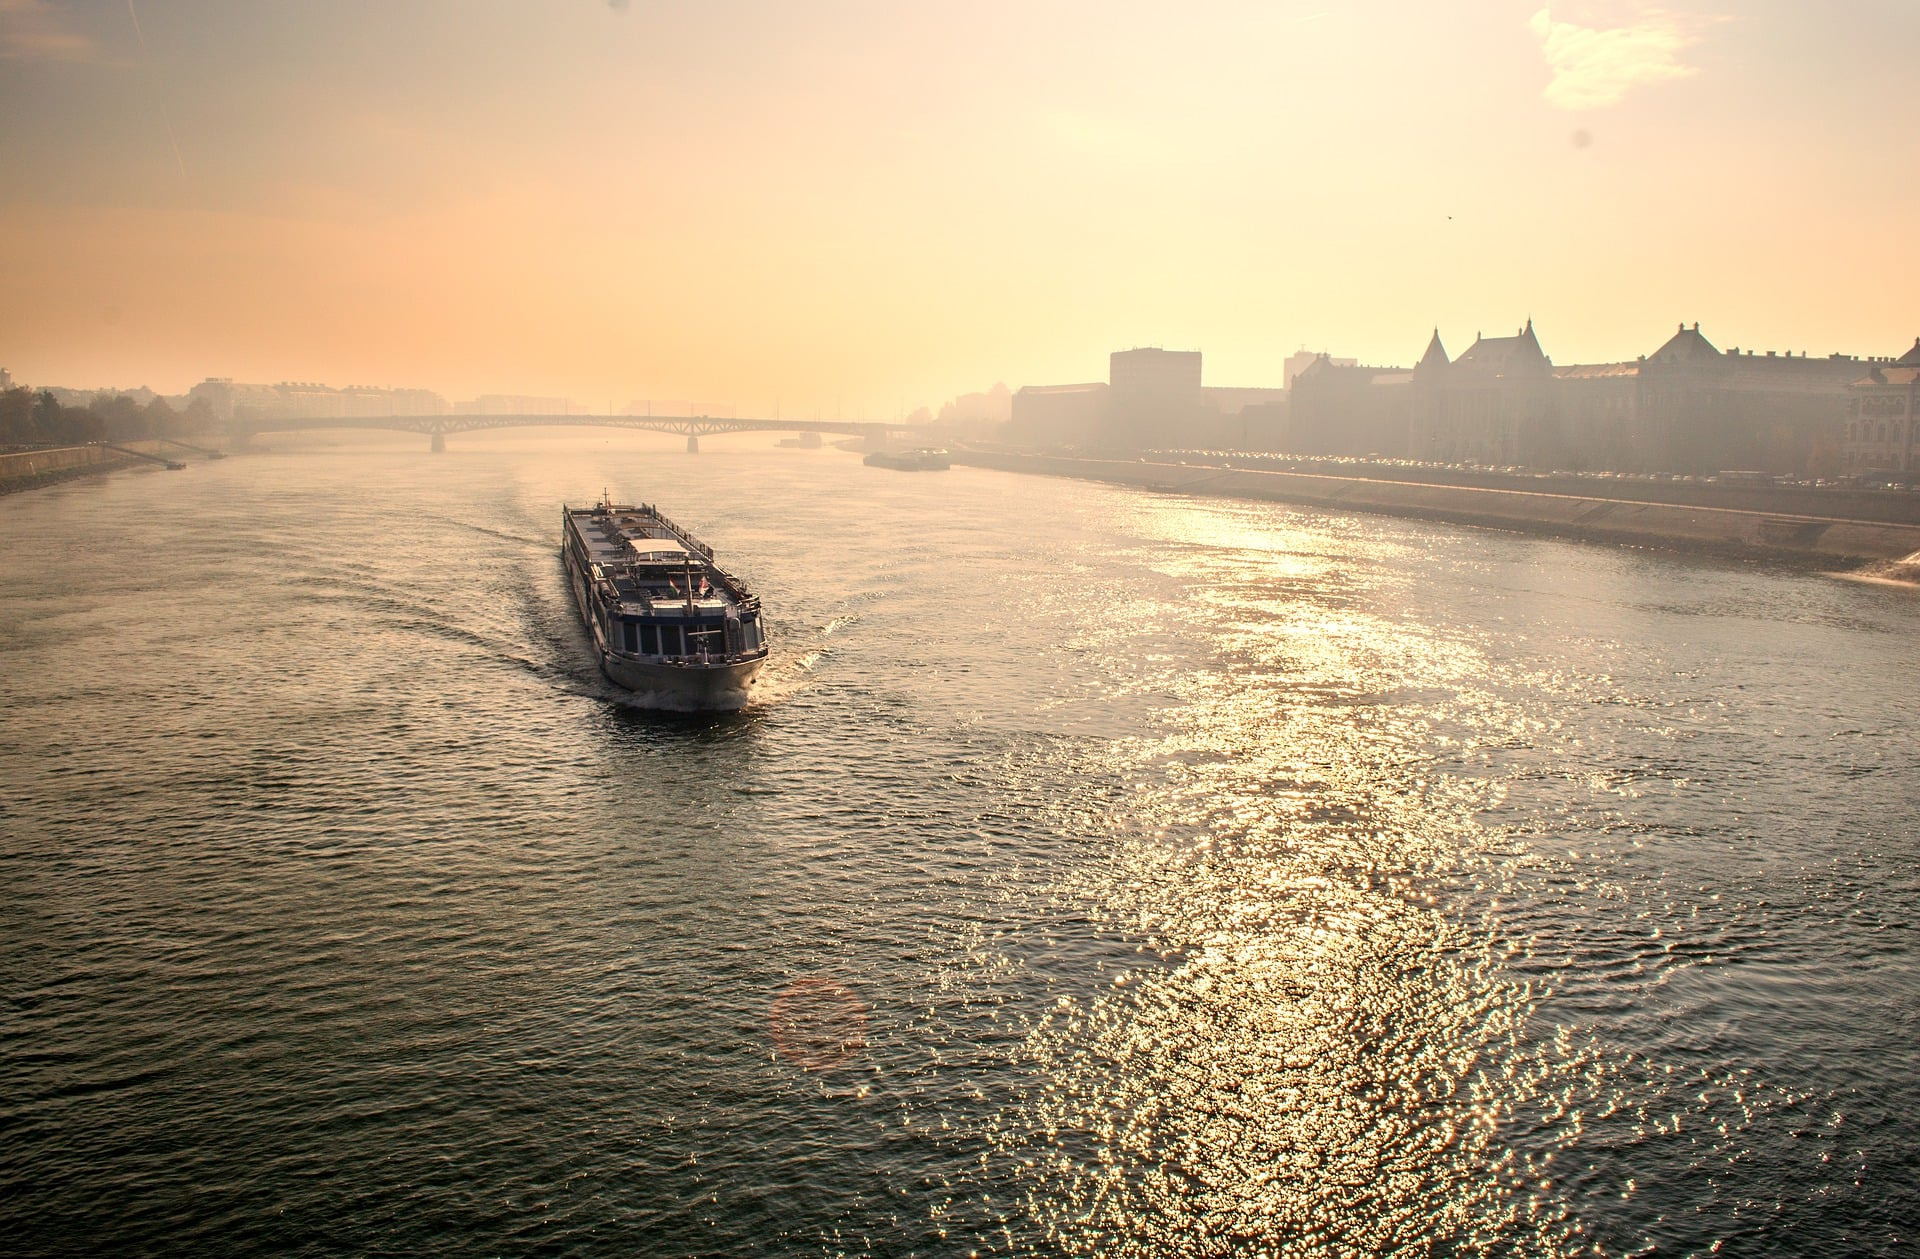 Next Step in the No-Deal No-Ferry Contract